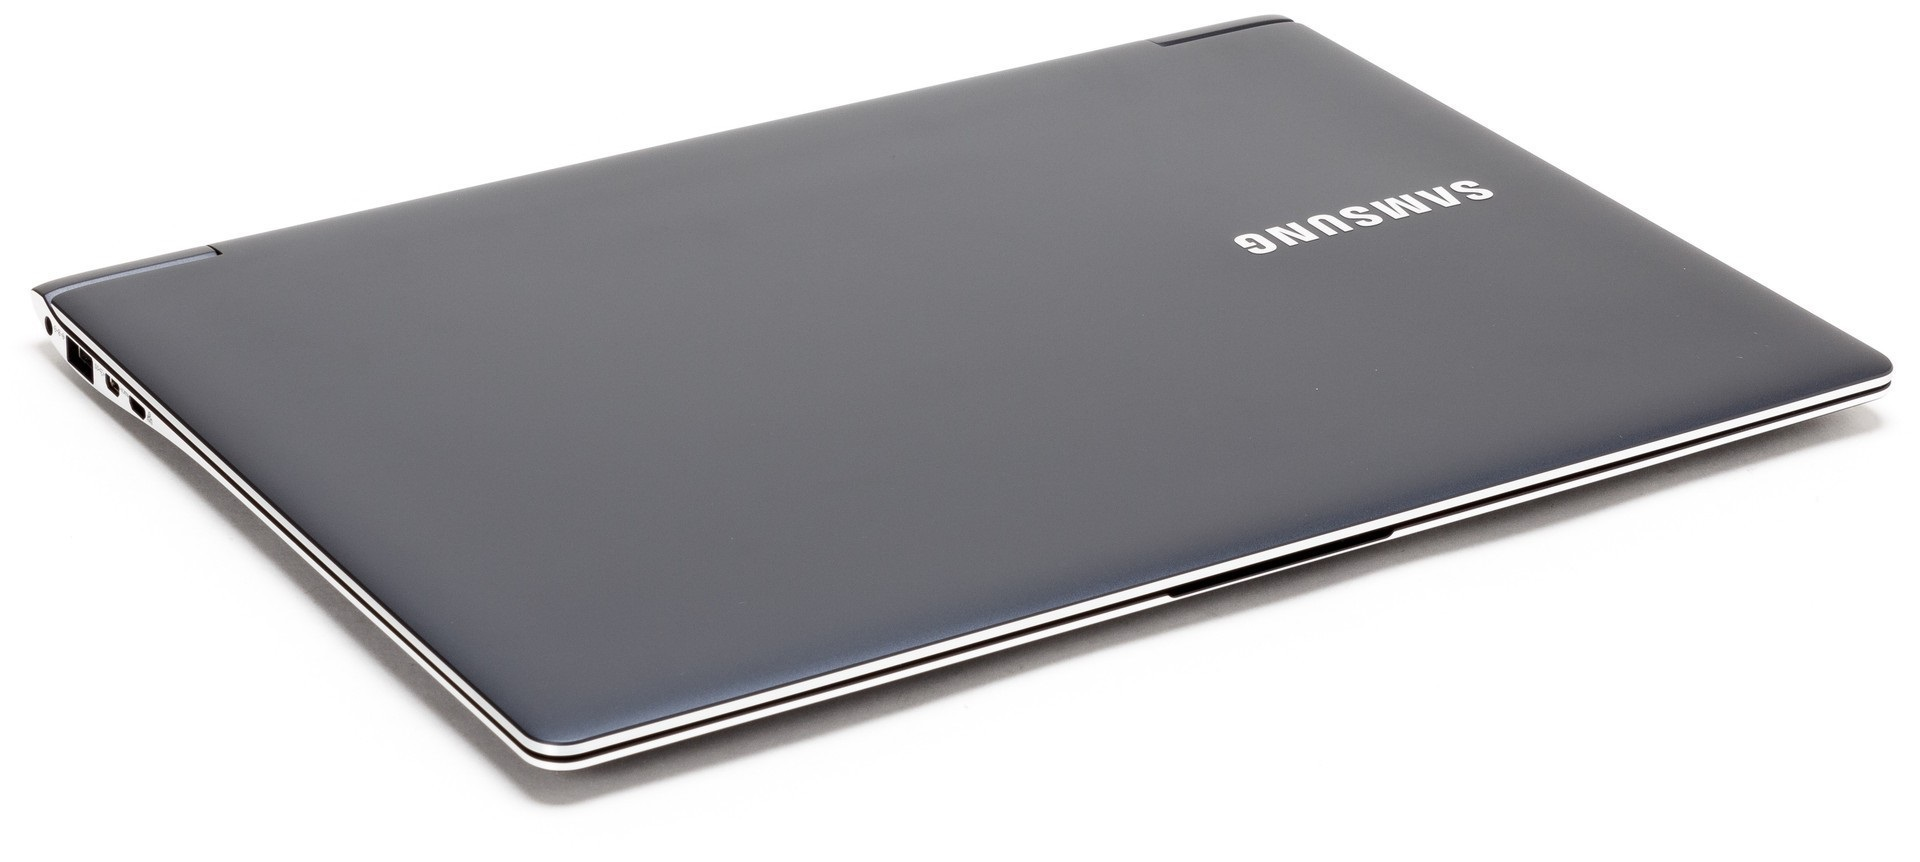 Ноутбук Samsung Ativ Book 9 Plus